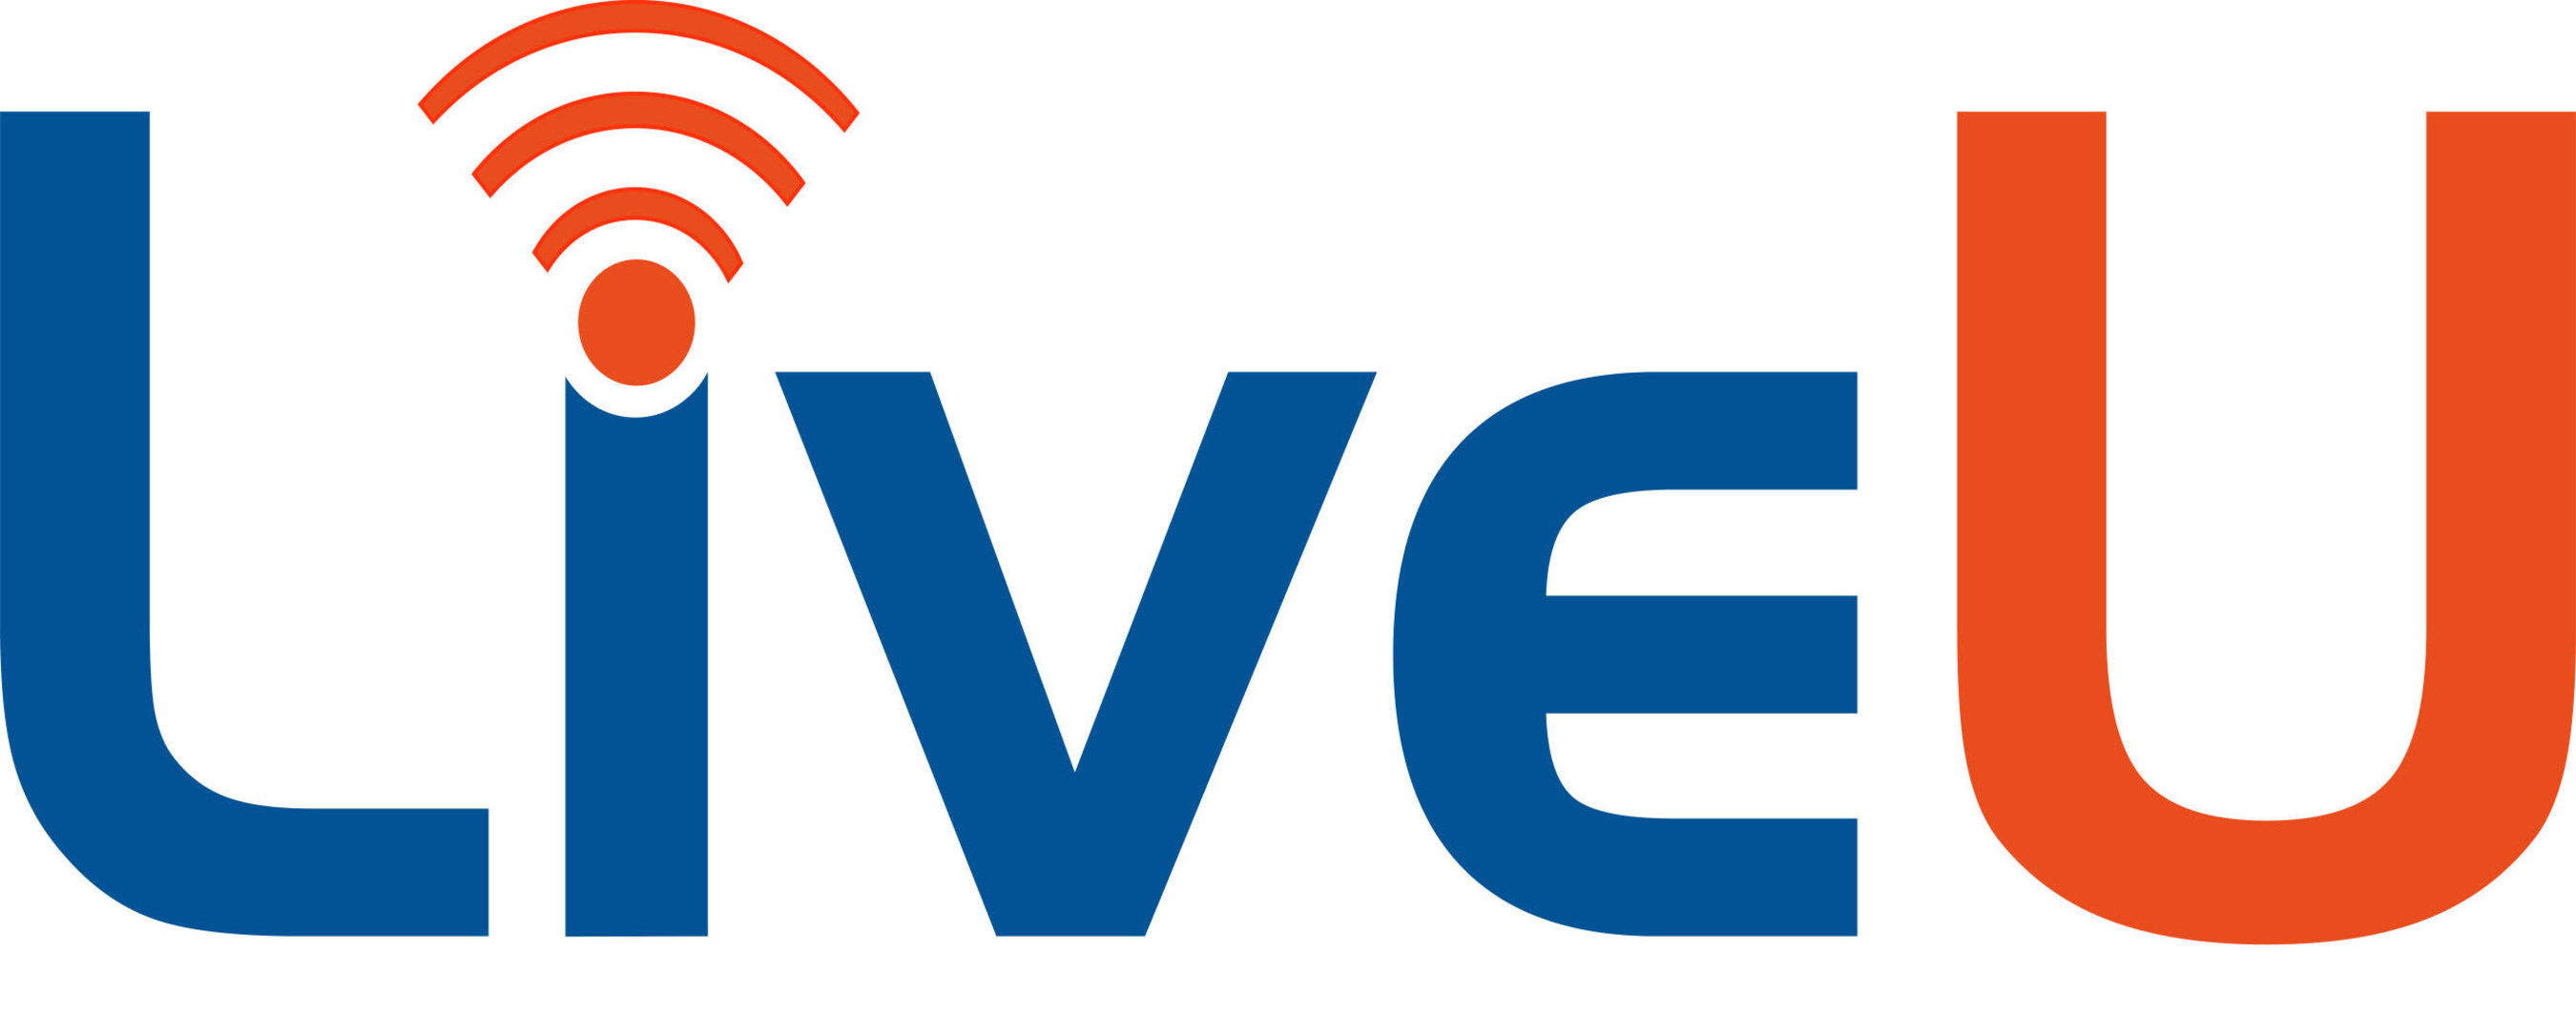 LiveU (http://liveu.tv/) is the pioneer and leader of IP-based video services and broadcast solutions for ...